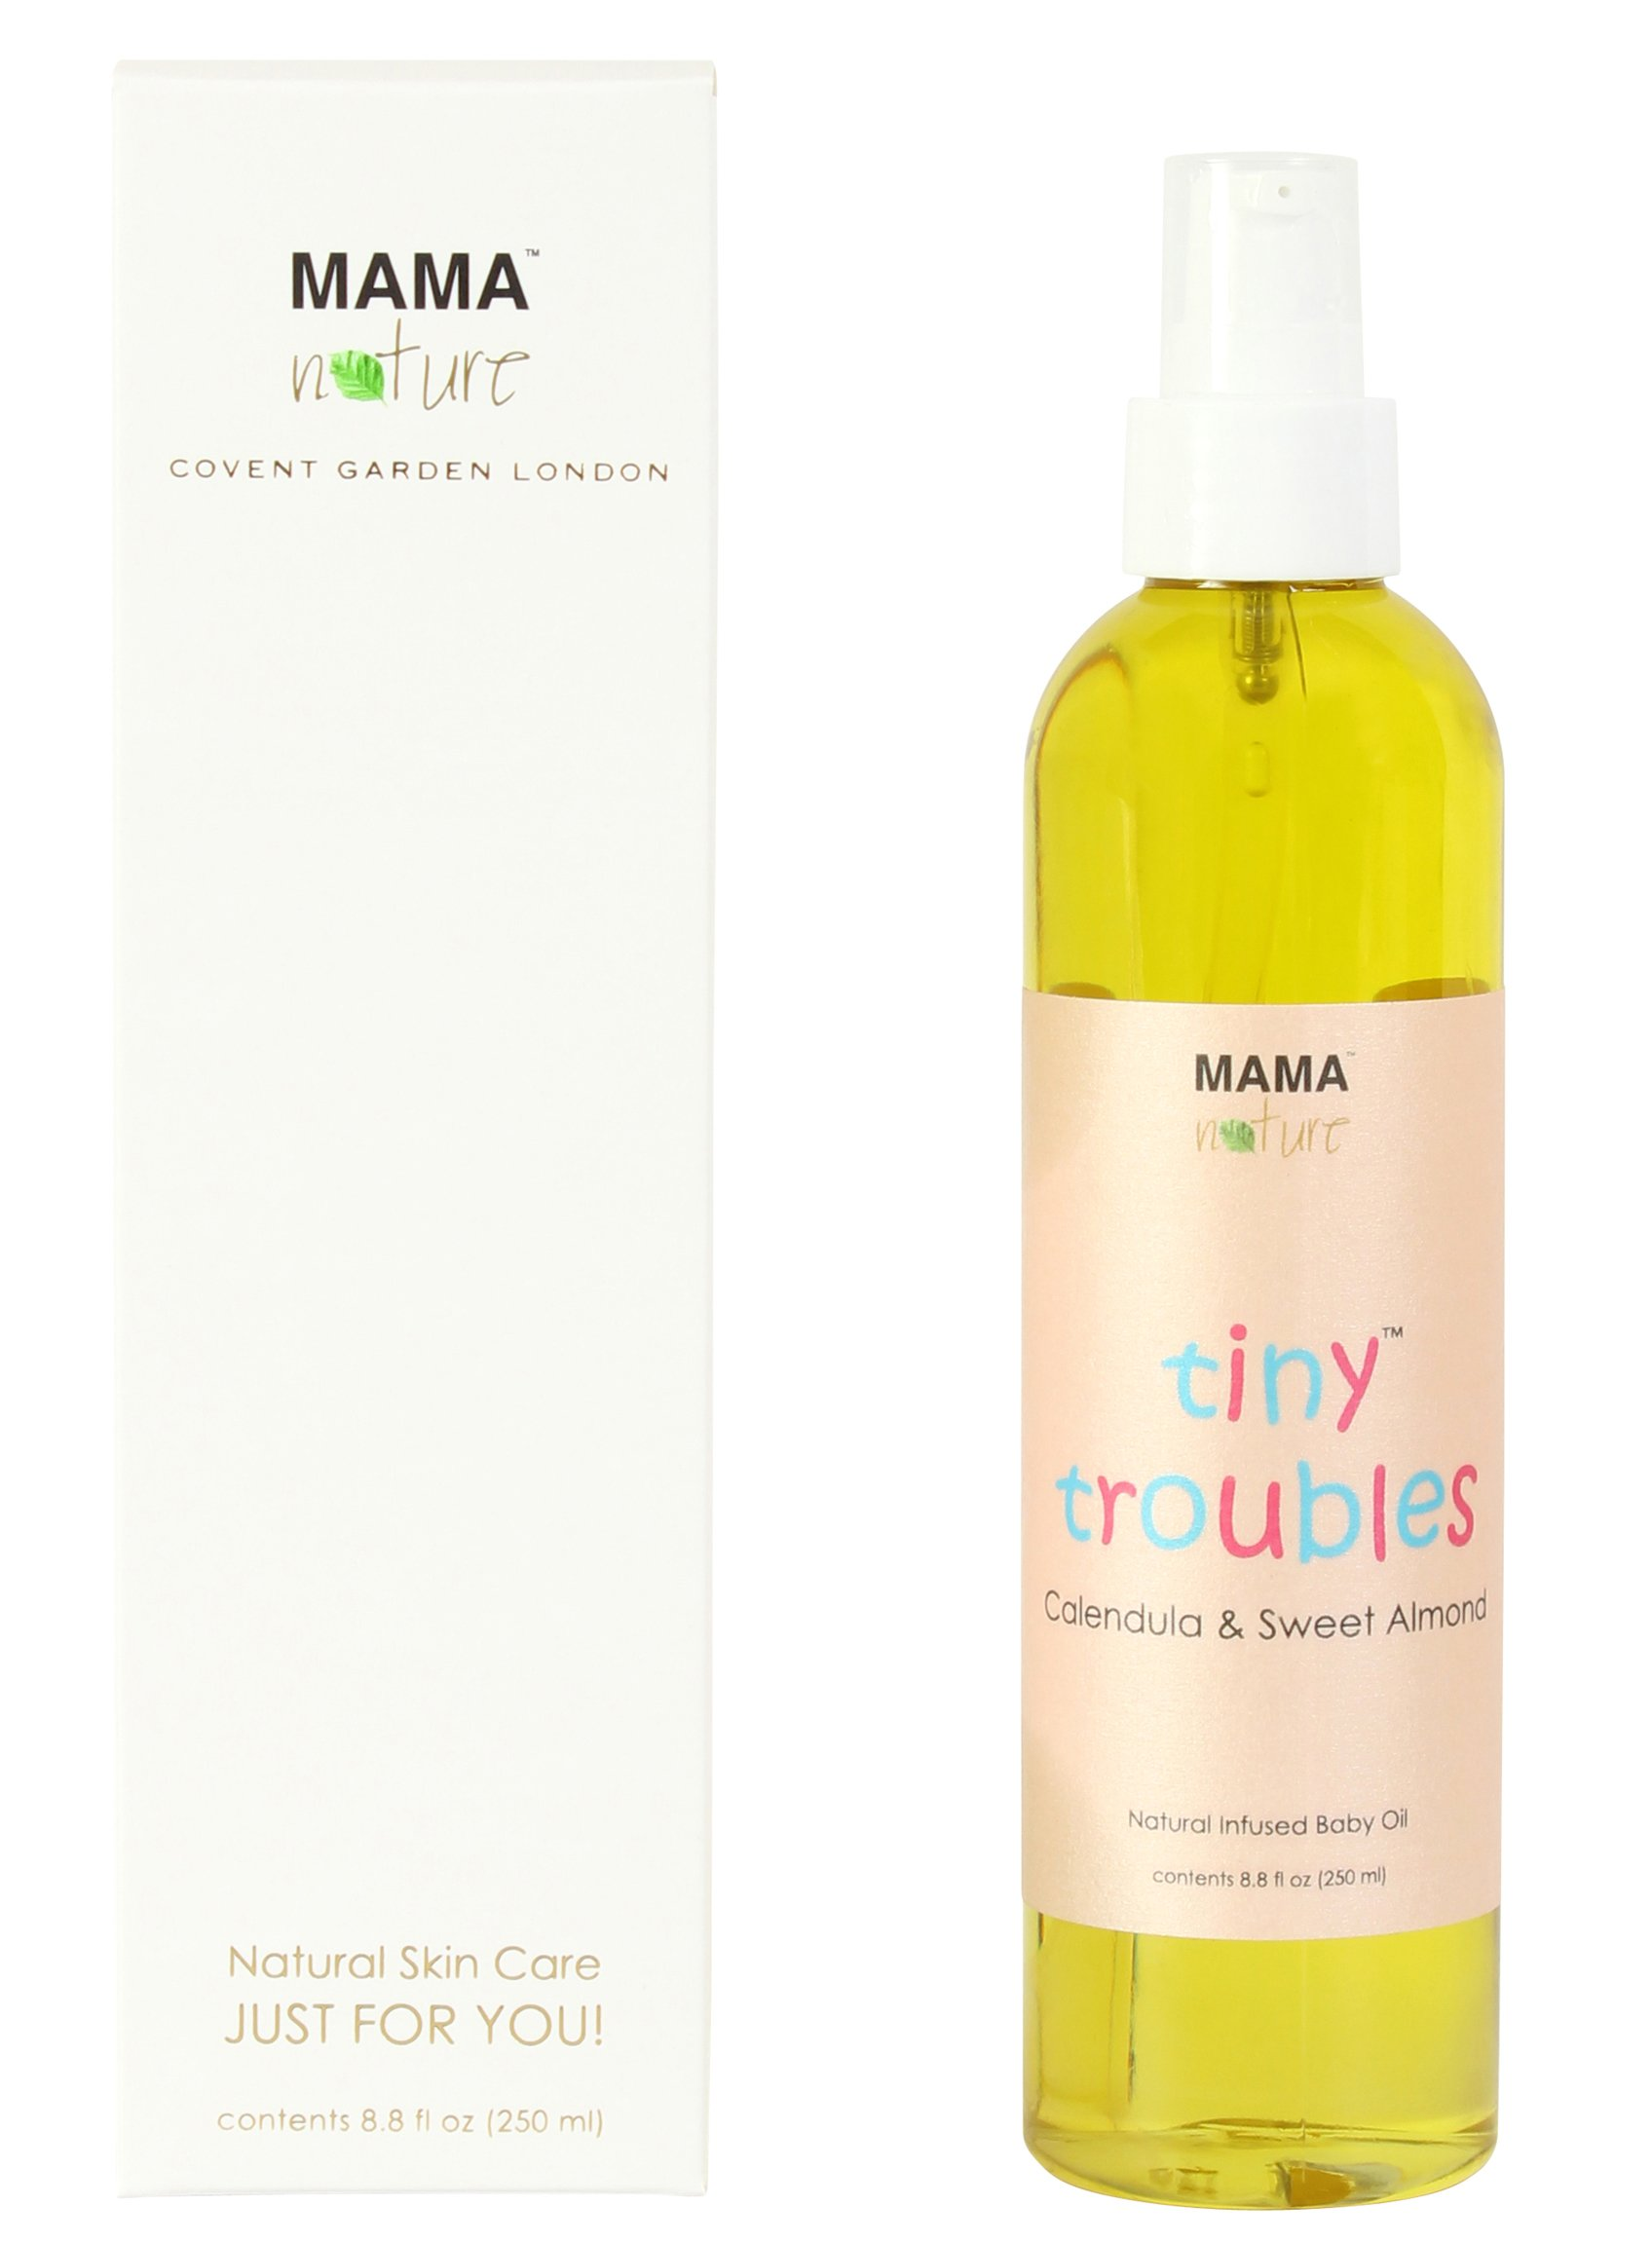 Tiny Troubles Natural Infused Baby Oil (Calendula & Sweet Almond) by Mama Nature of London (8.8 fl oz) - Cradle Cap,Diaper Rash,Baby Eczema,Baby Psoriasis,Baby Rosacea,Dry Skin,Sweat Rash by Mama Nature of London